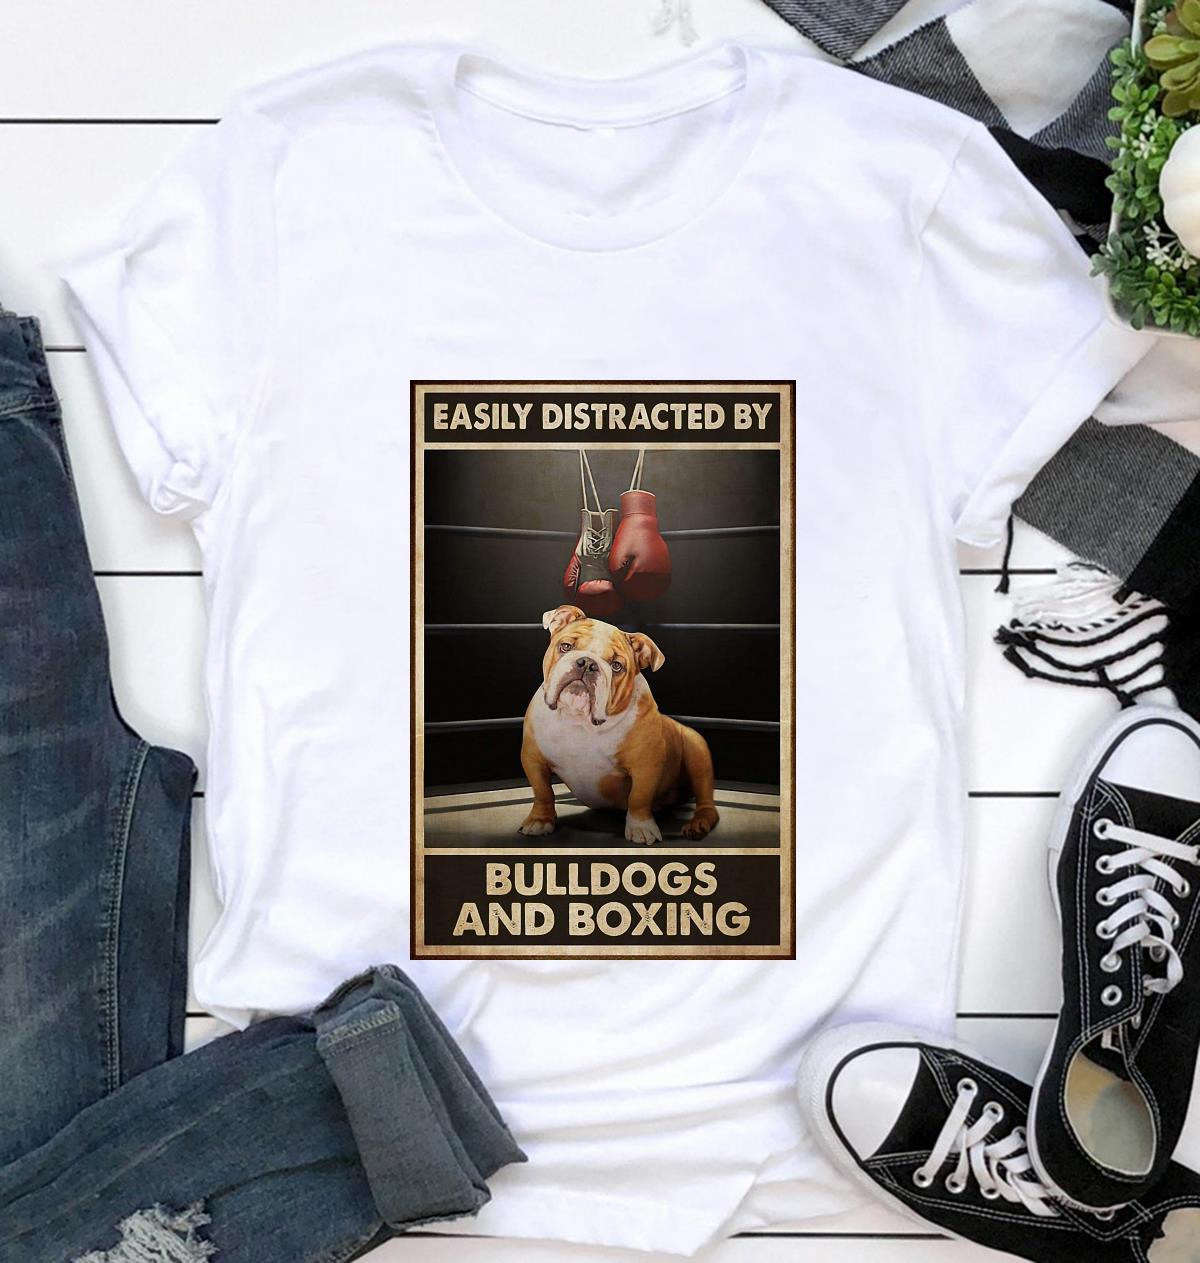 Easily distracted by bulldogs and boxing poster t-shirt